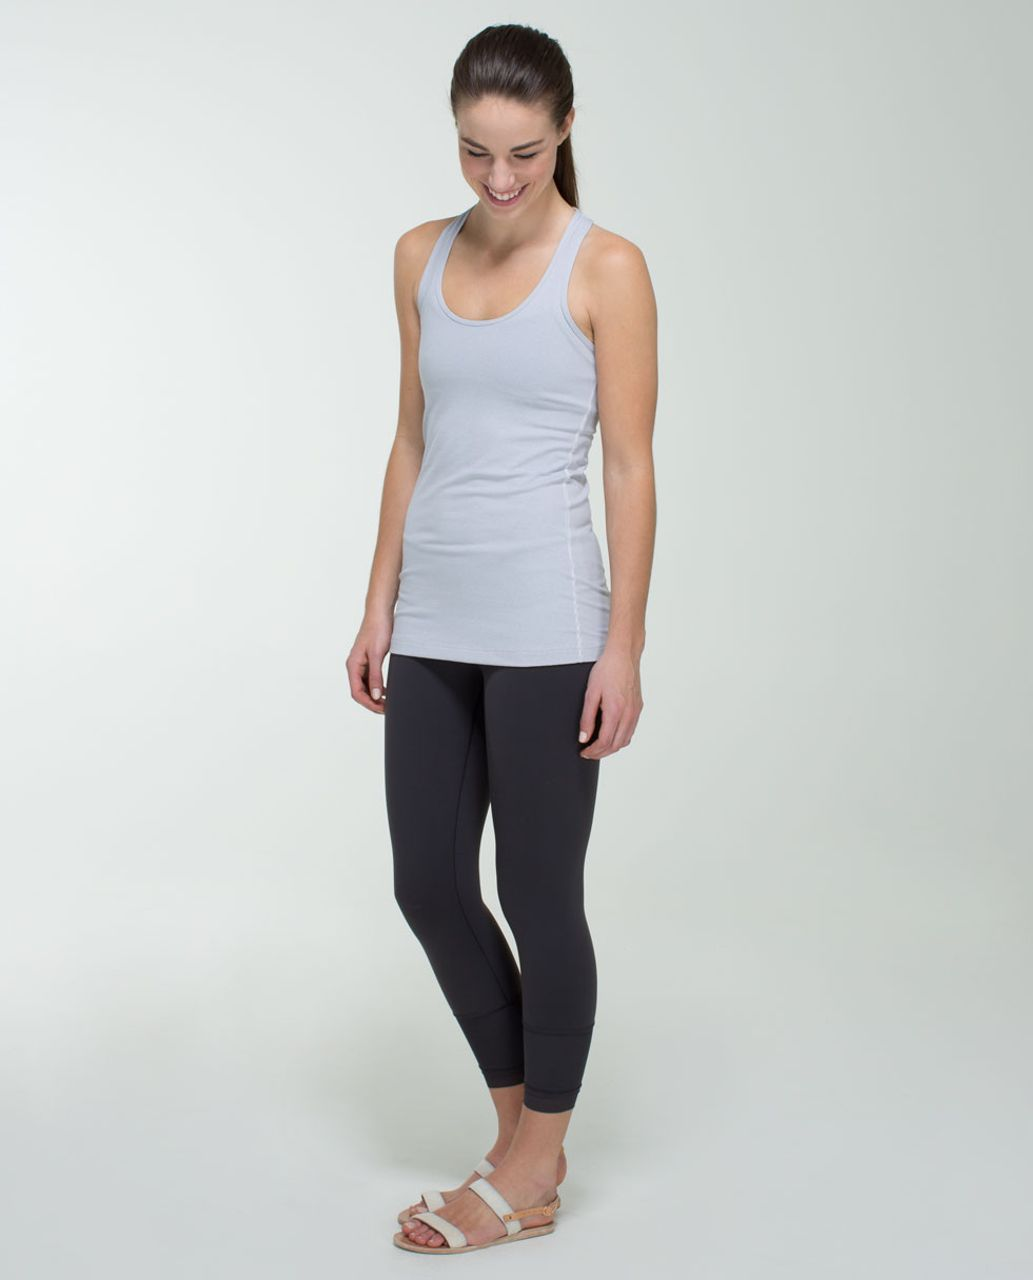 Lululemon Cool Racerback - Wee Stripe White Heathered Medium Grey